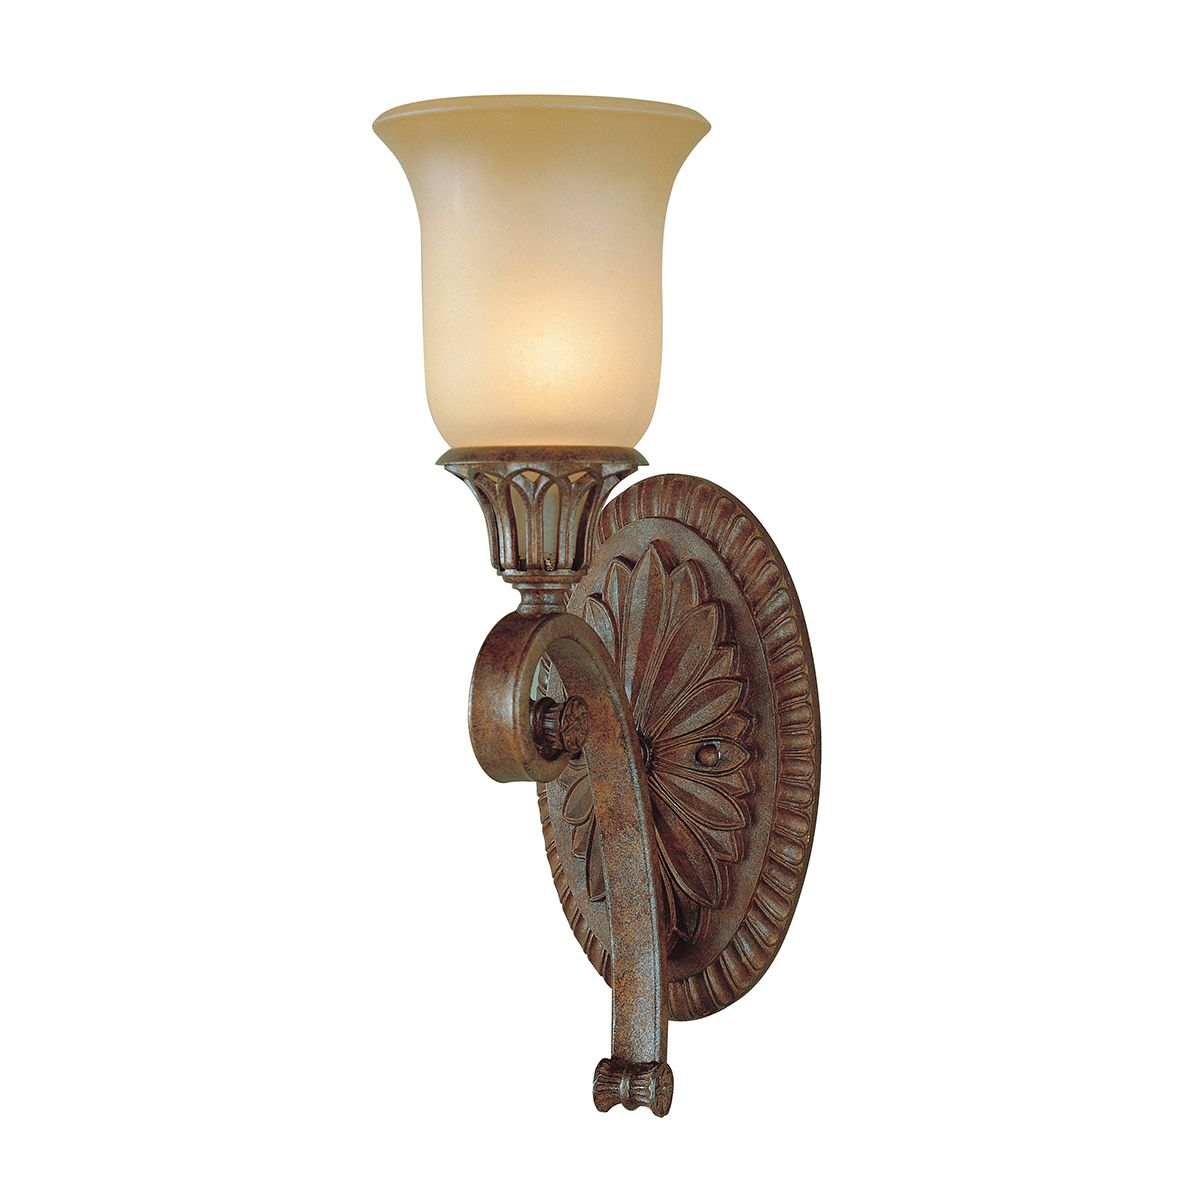 stirling castle single wall light in a bronze finish with a co